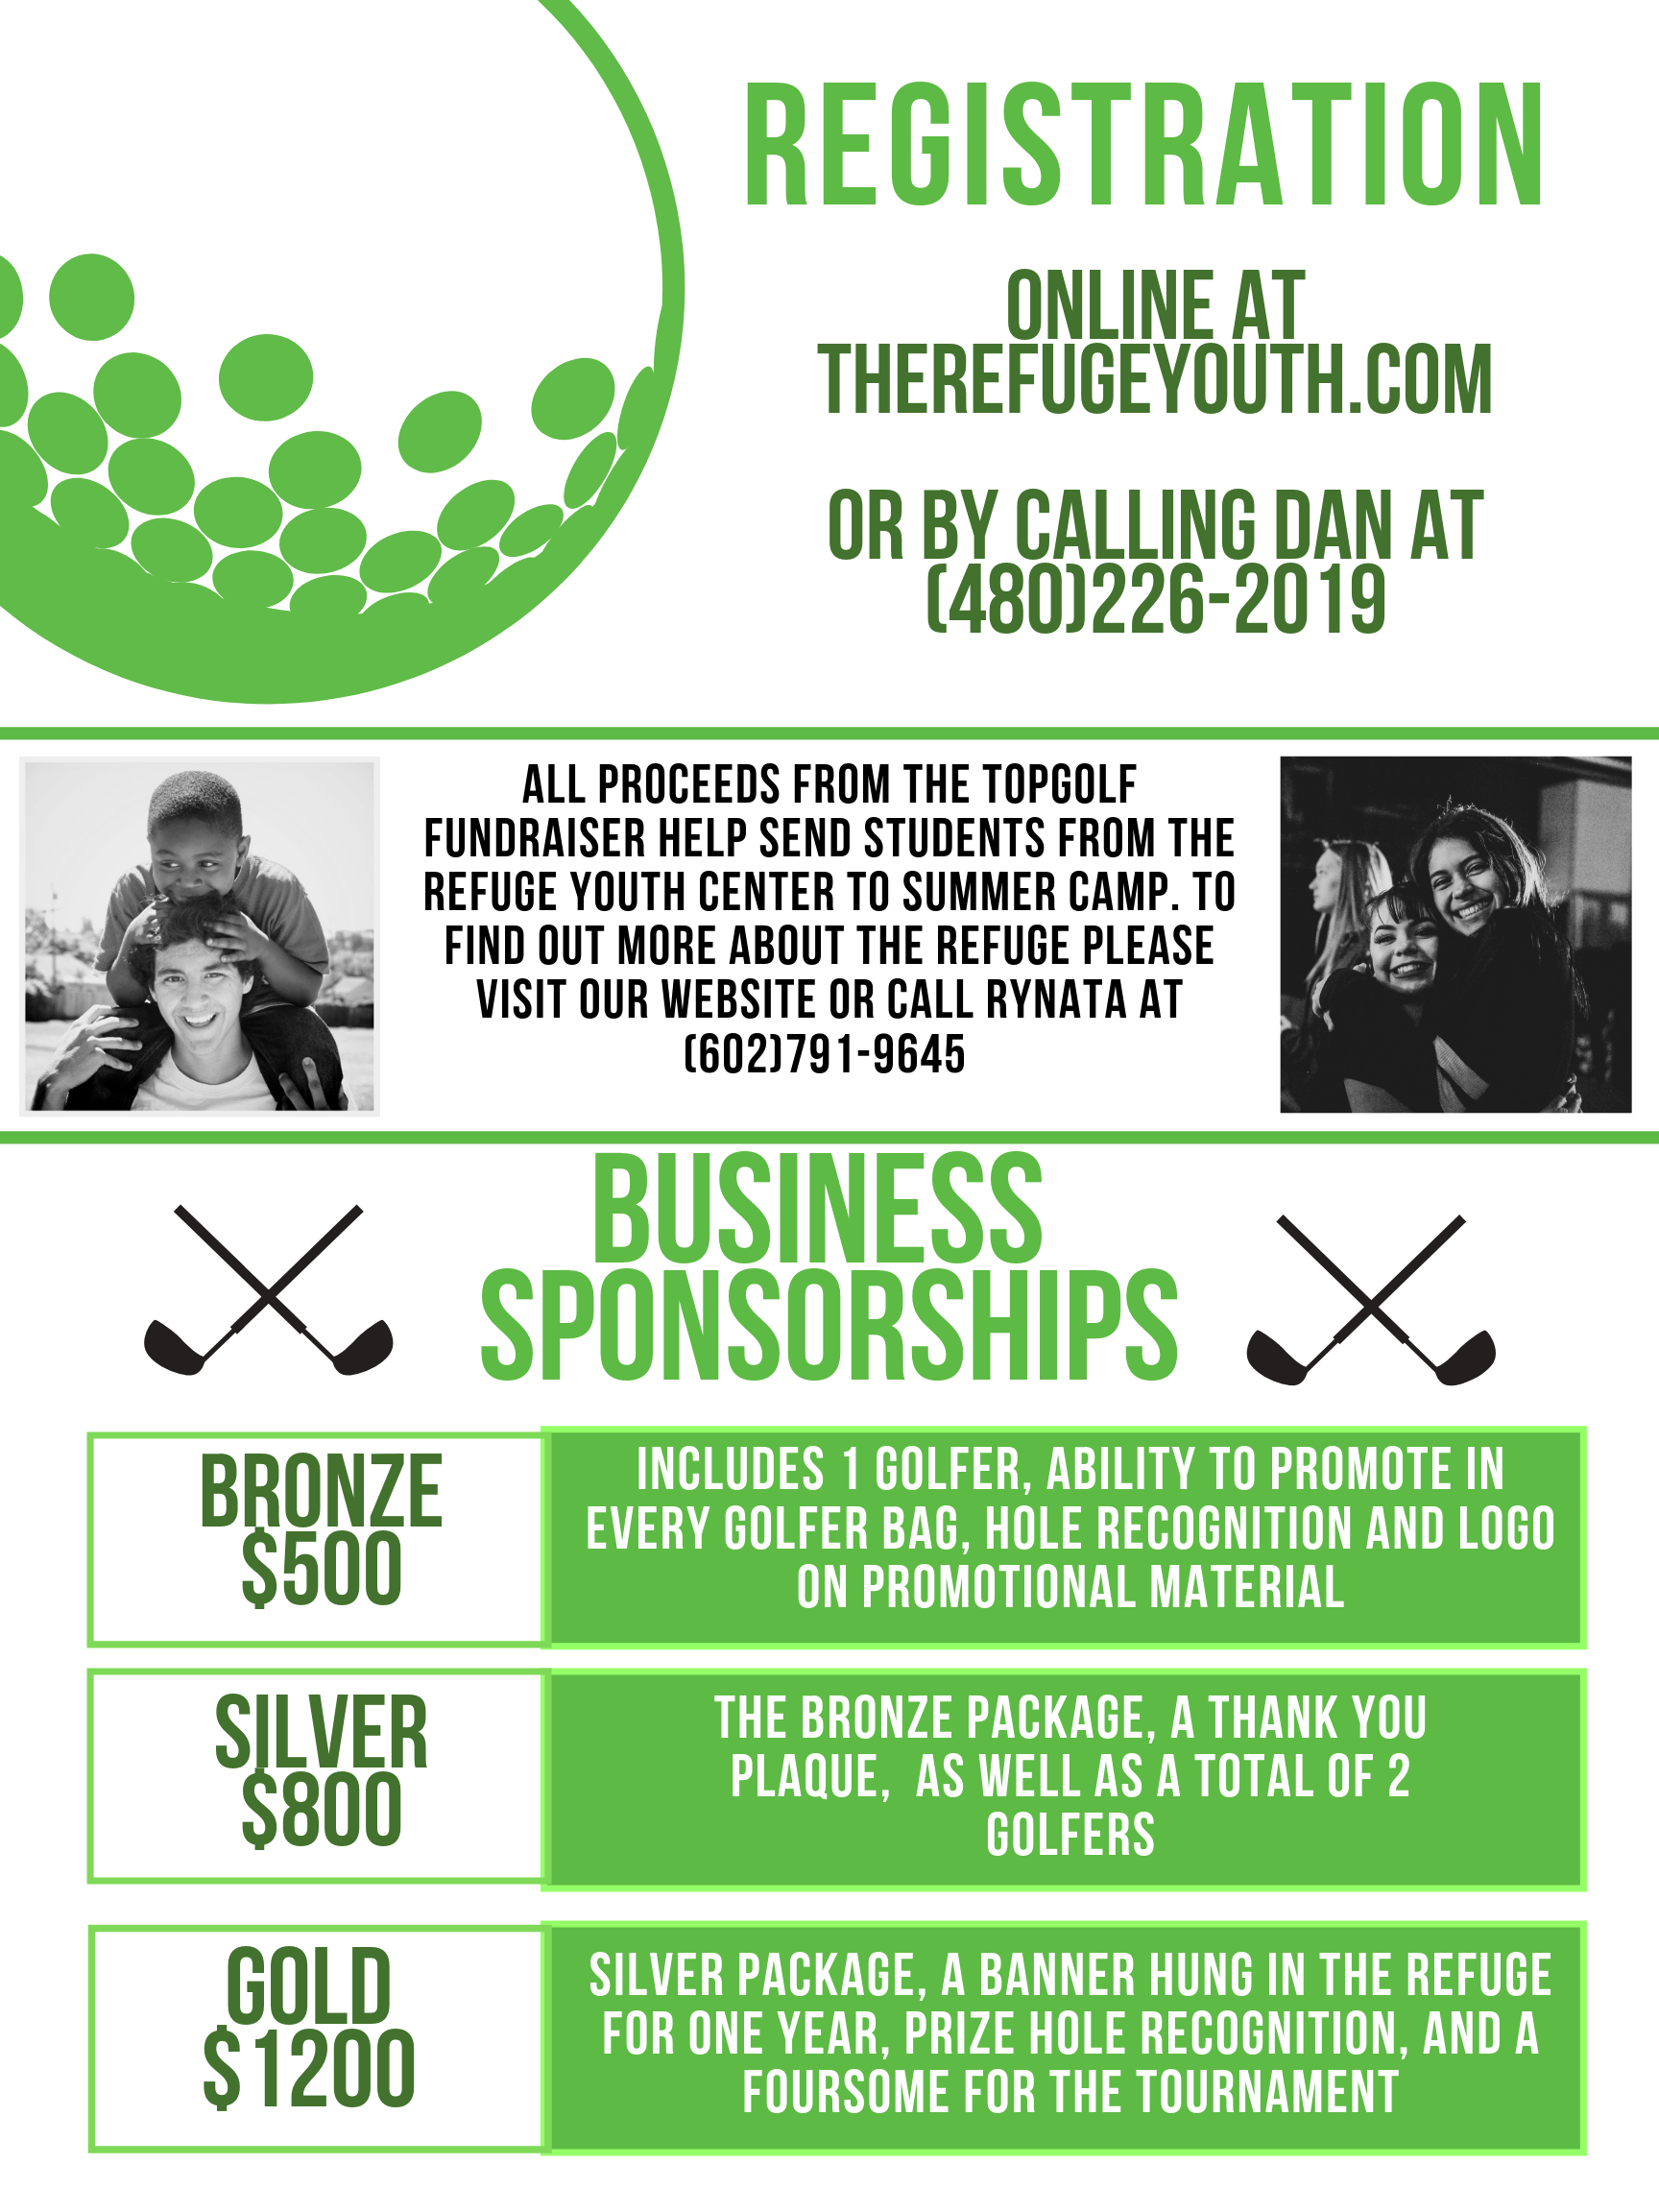 If you are interested in a business sponsorship, please fill out the form below: